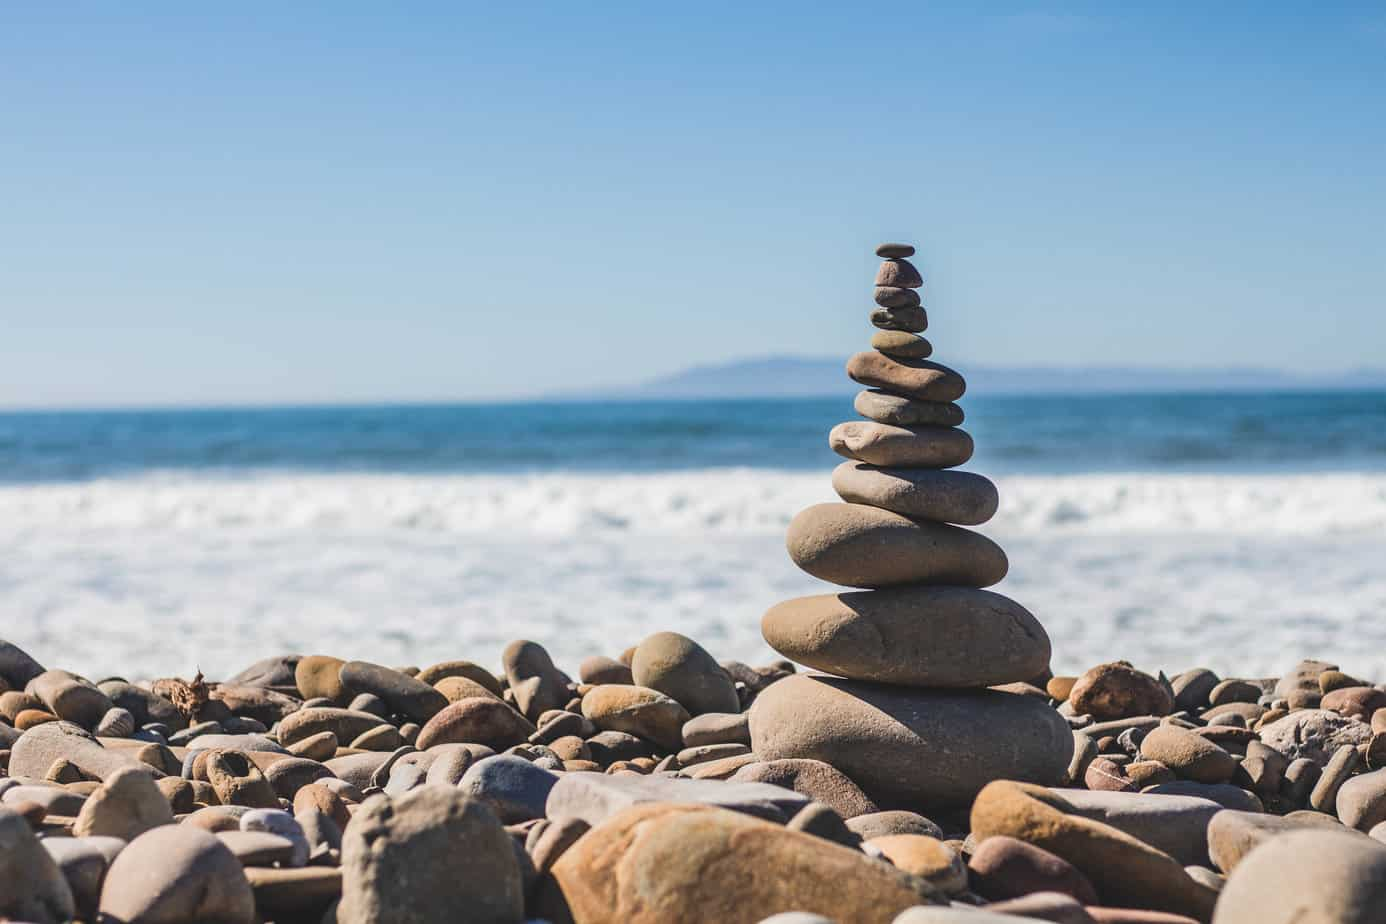 How to Find Balance in Life (In 7 Easy Steps)